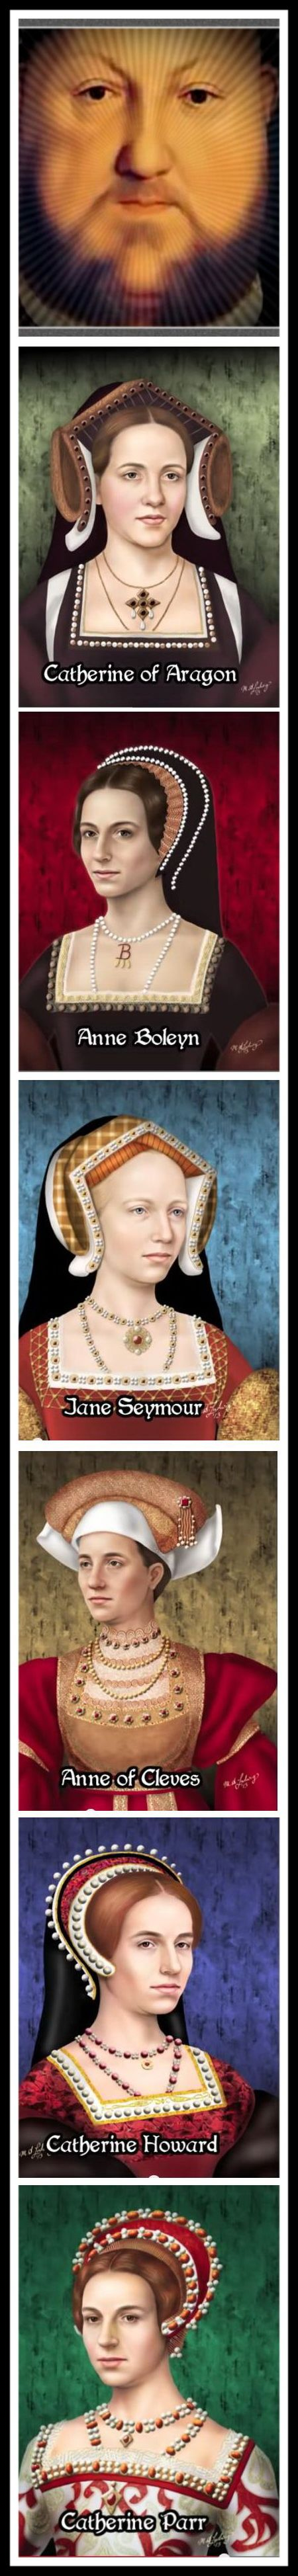 17 best images about english royalty 15th 16th century on 17 best images about english royalty 15th 16th century richard iii mary boleyn and jane seymour